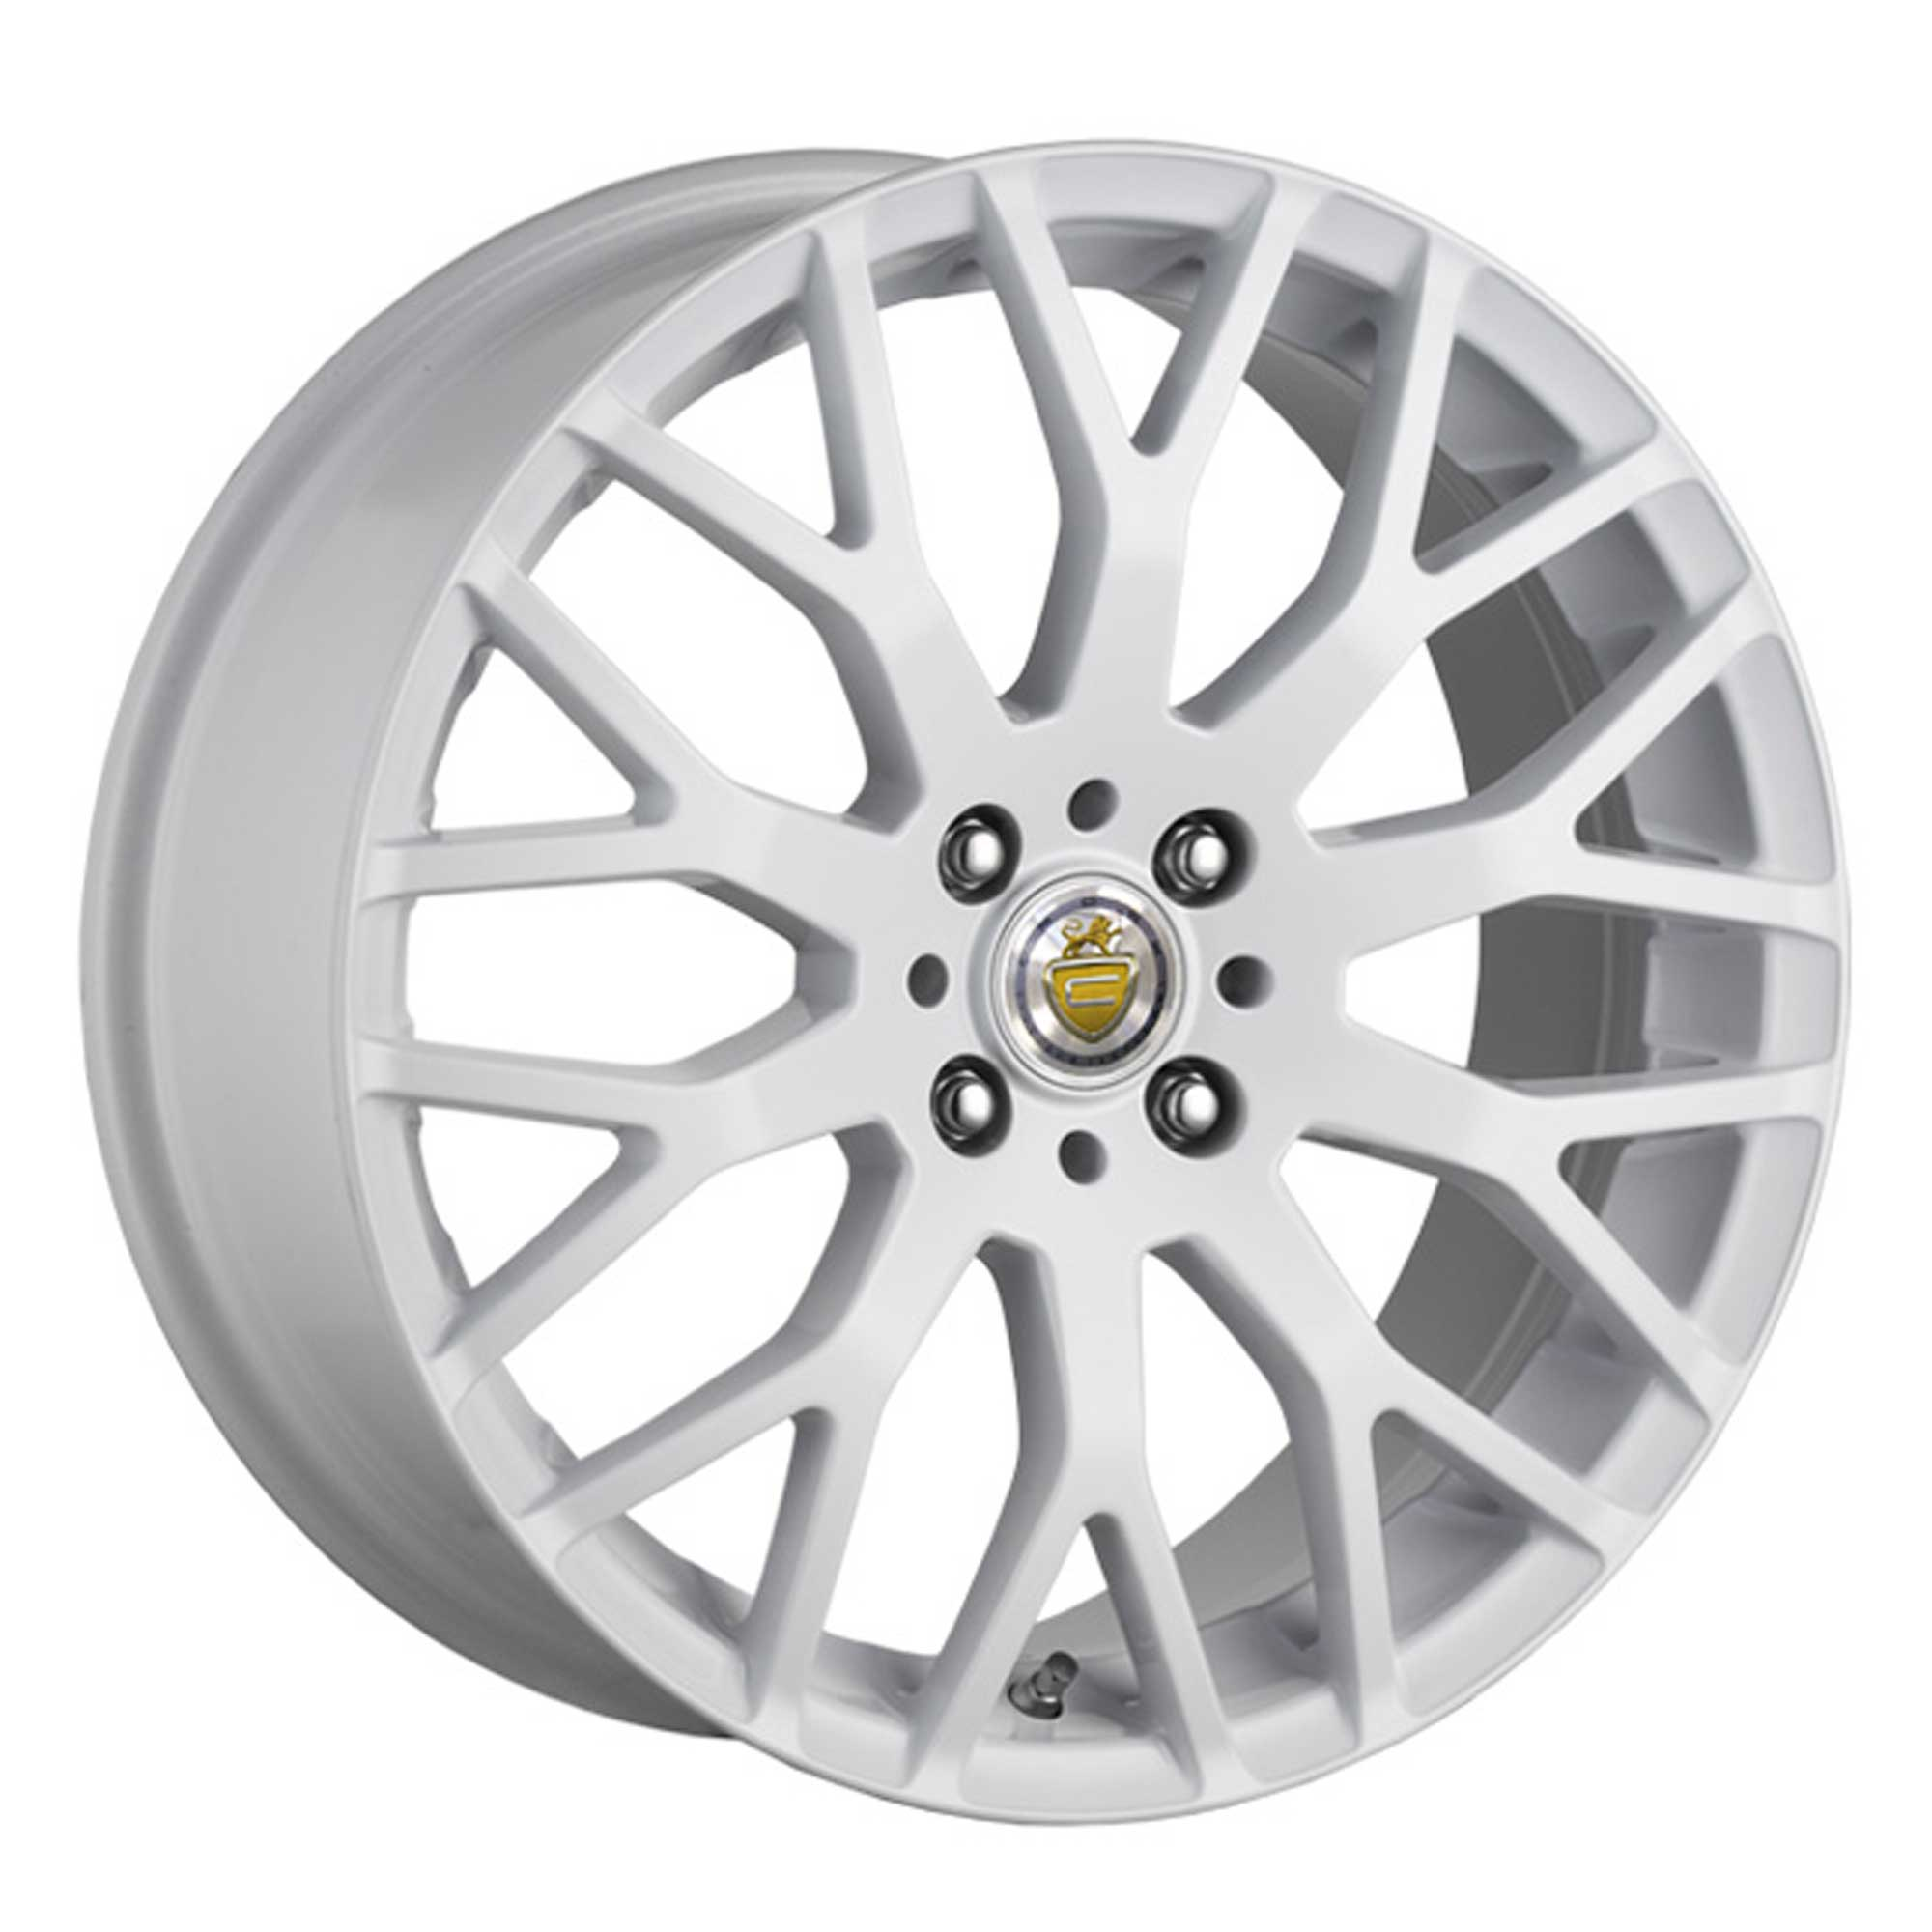 "NEW 17"" CADES VIENNA ALLOY WHEELS IN WHITE"